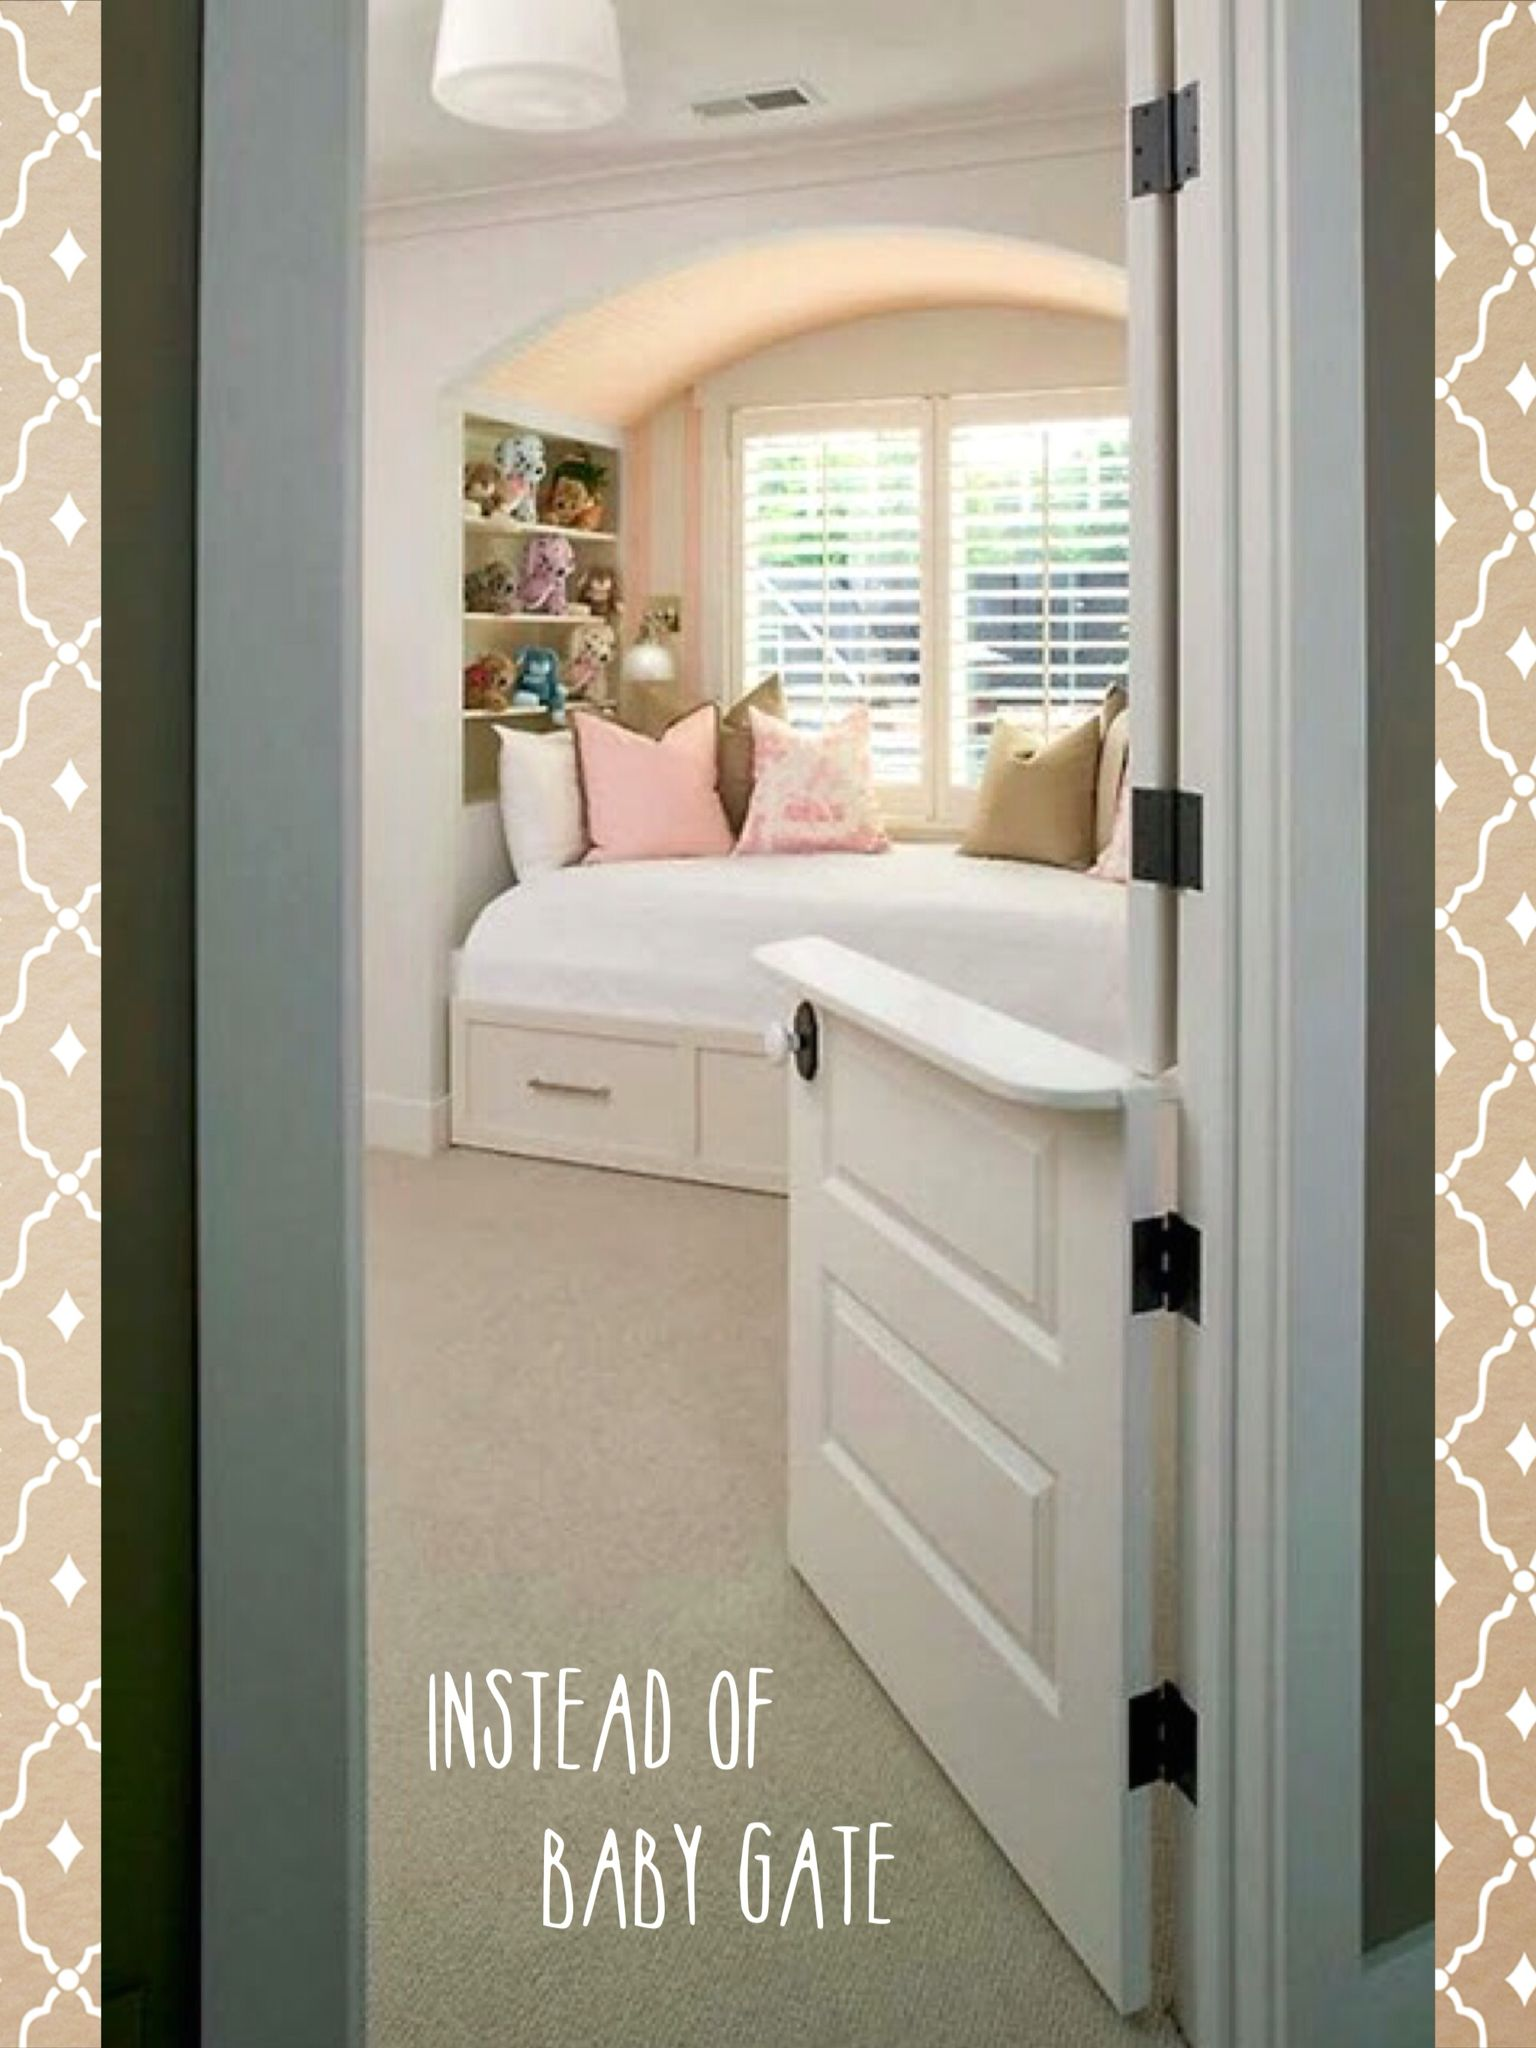 Instead of a baby gate, install a Dutch door | Room & Home Design ...